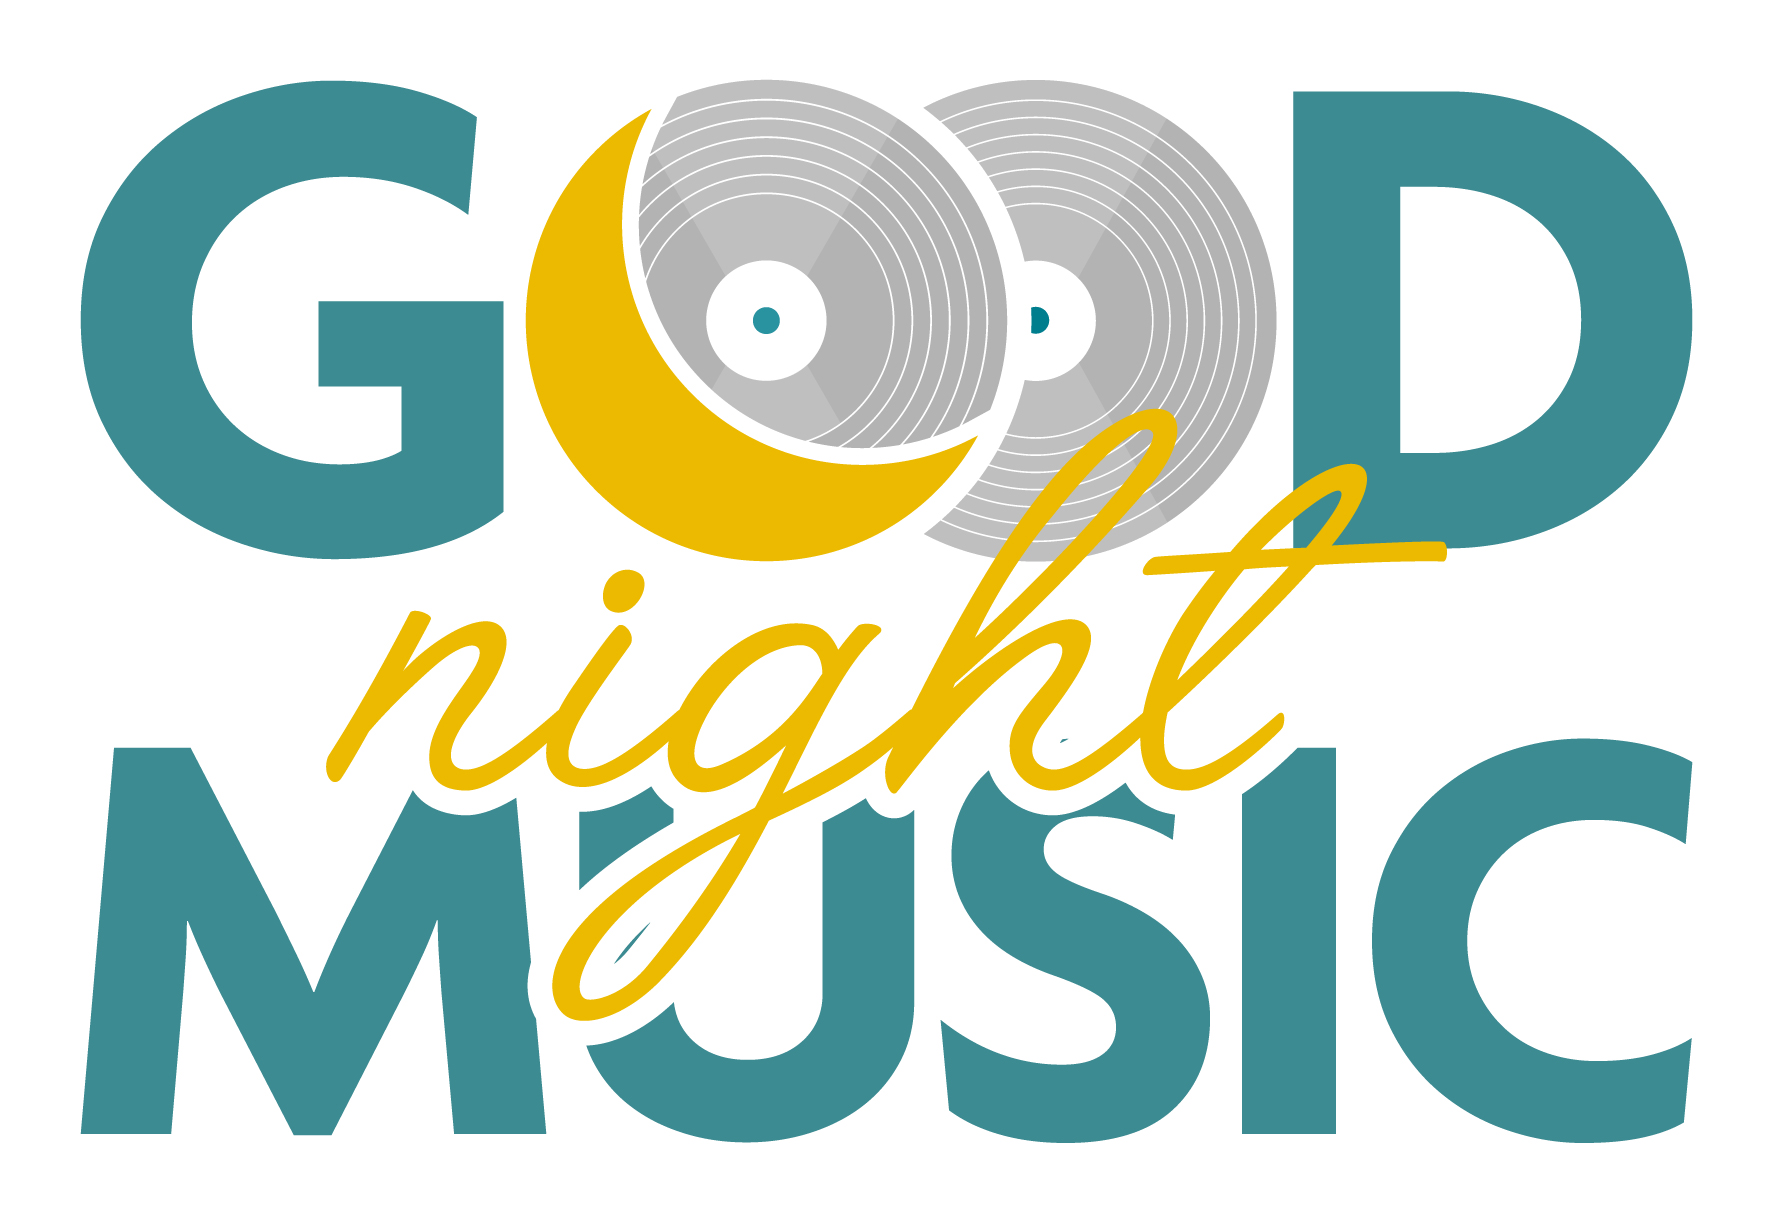 FC5002327 - AGD Ent Co - Good Night Music_Revision 3-01.jpg